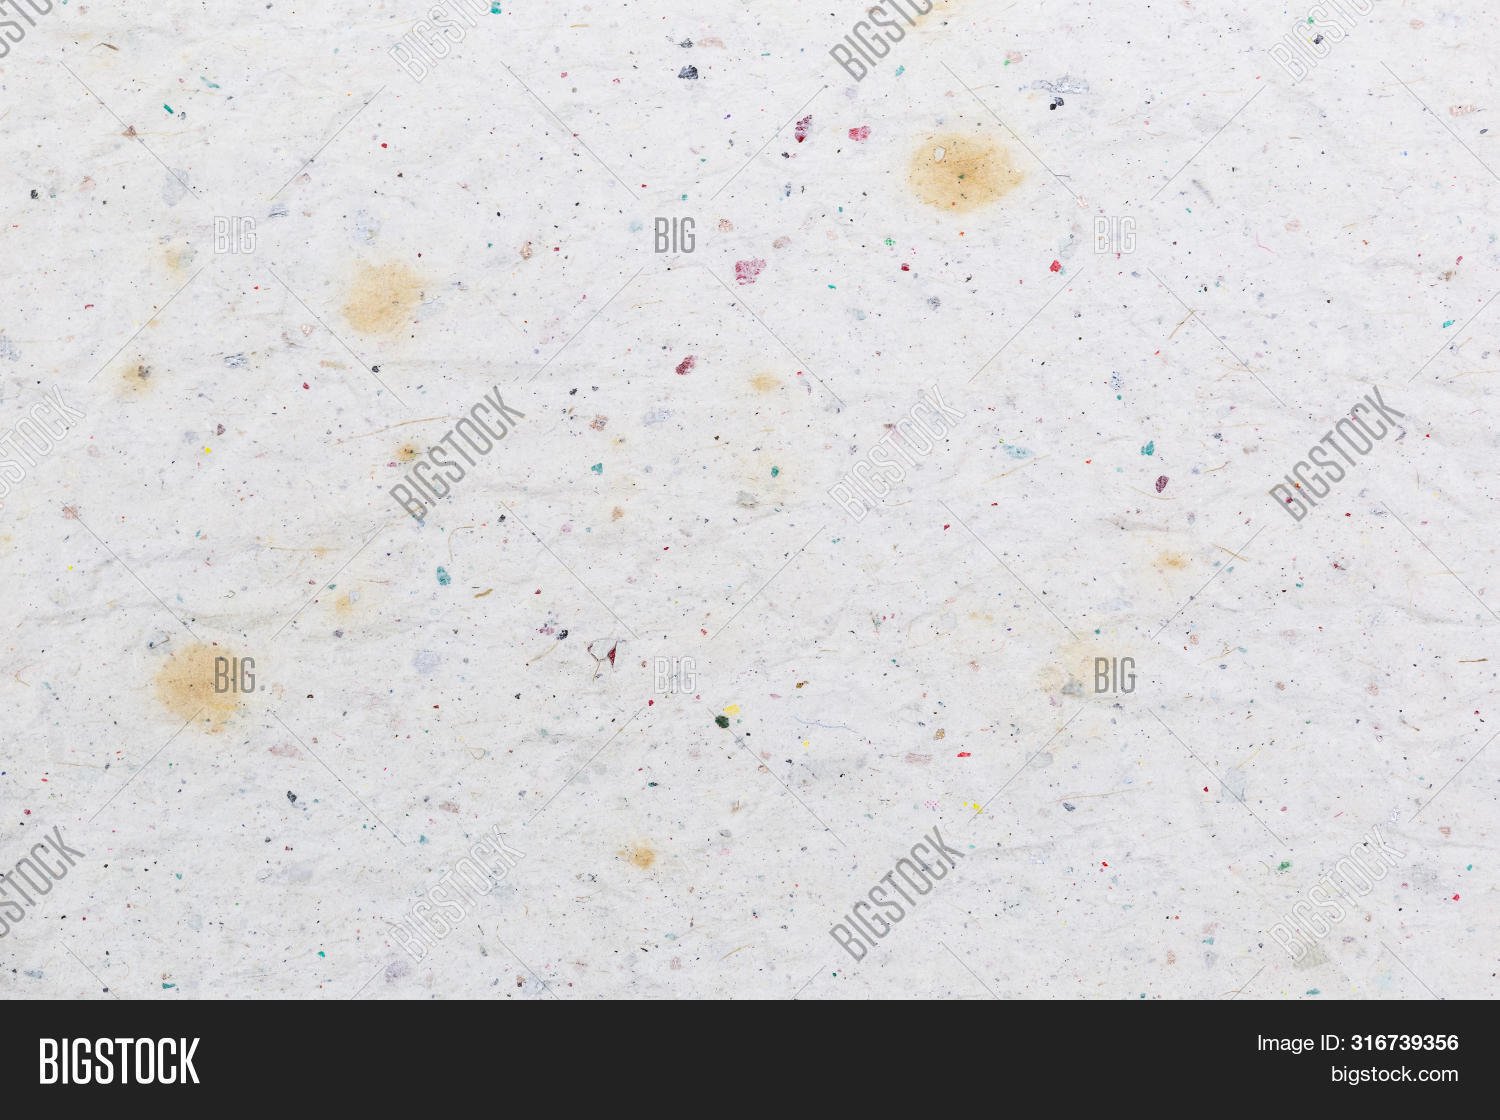 Abstract,abstract-background,ancient,art,backdrop,background,black,blank,bright,canvas,card,cement,christmas,clean,color,copy,cover,decoration,design.,dirty,frame,grain,grunge,line,manuscript,nature,new,old,page,paper,paper-background,parchment,pattern-background,retro,scrapbook,sheet,stained,text,texture,texture-background,textured,vintage,wall,wallpaper,watercolor,web,white,winter,wrinkled,yellow